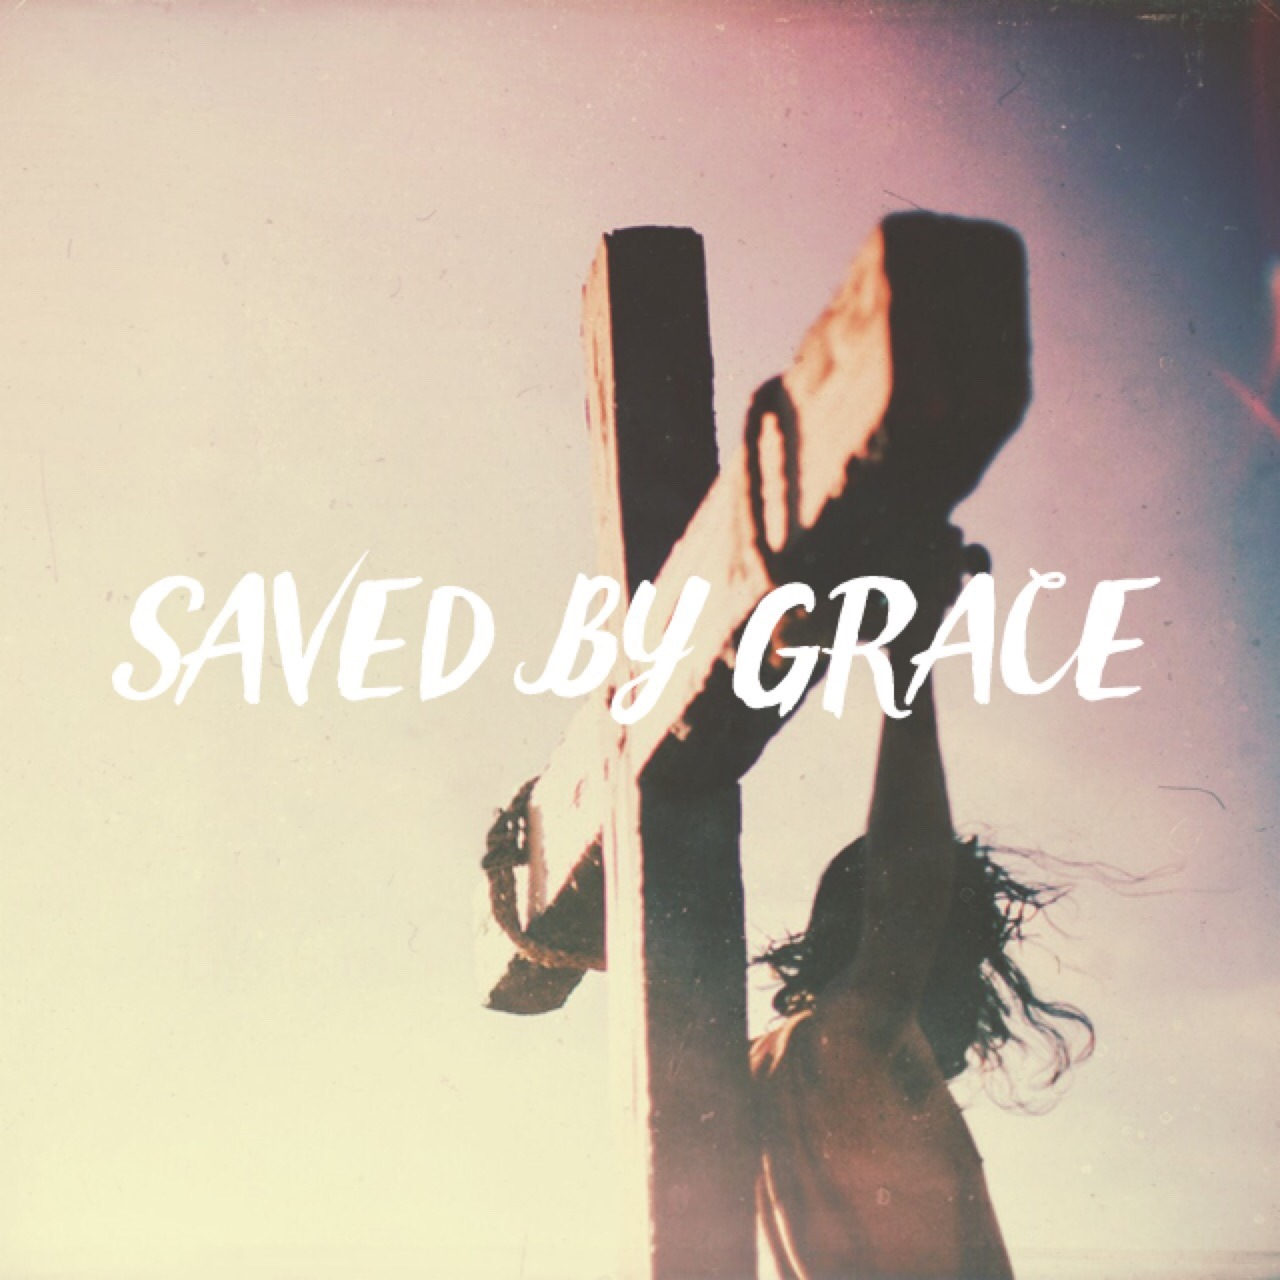 """hecallsmelovely:  Grace isn't just forgiveness, it is forgiveness fueled by surrender. Jesus said, """"Father, forgive them, for they don't know what they are doing, [as He hung on that beautiful cross after being beaten and mocked]"""" (Luke 23:34). It was in His great love that the Father gave the Son. It was out of love that Jesus gave Himself (Rom. 3:16; Eph. 5:26). The taking, the having of Jesus, is the entrance into a life in the love of God. This is the highest life (John 14:21,28; 17:23,26; Eph. 3:17,18). Through faith we must press into love and live there (1 John 4:16-18)."""